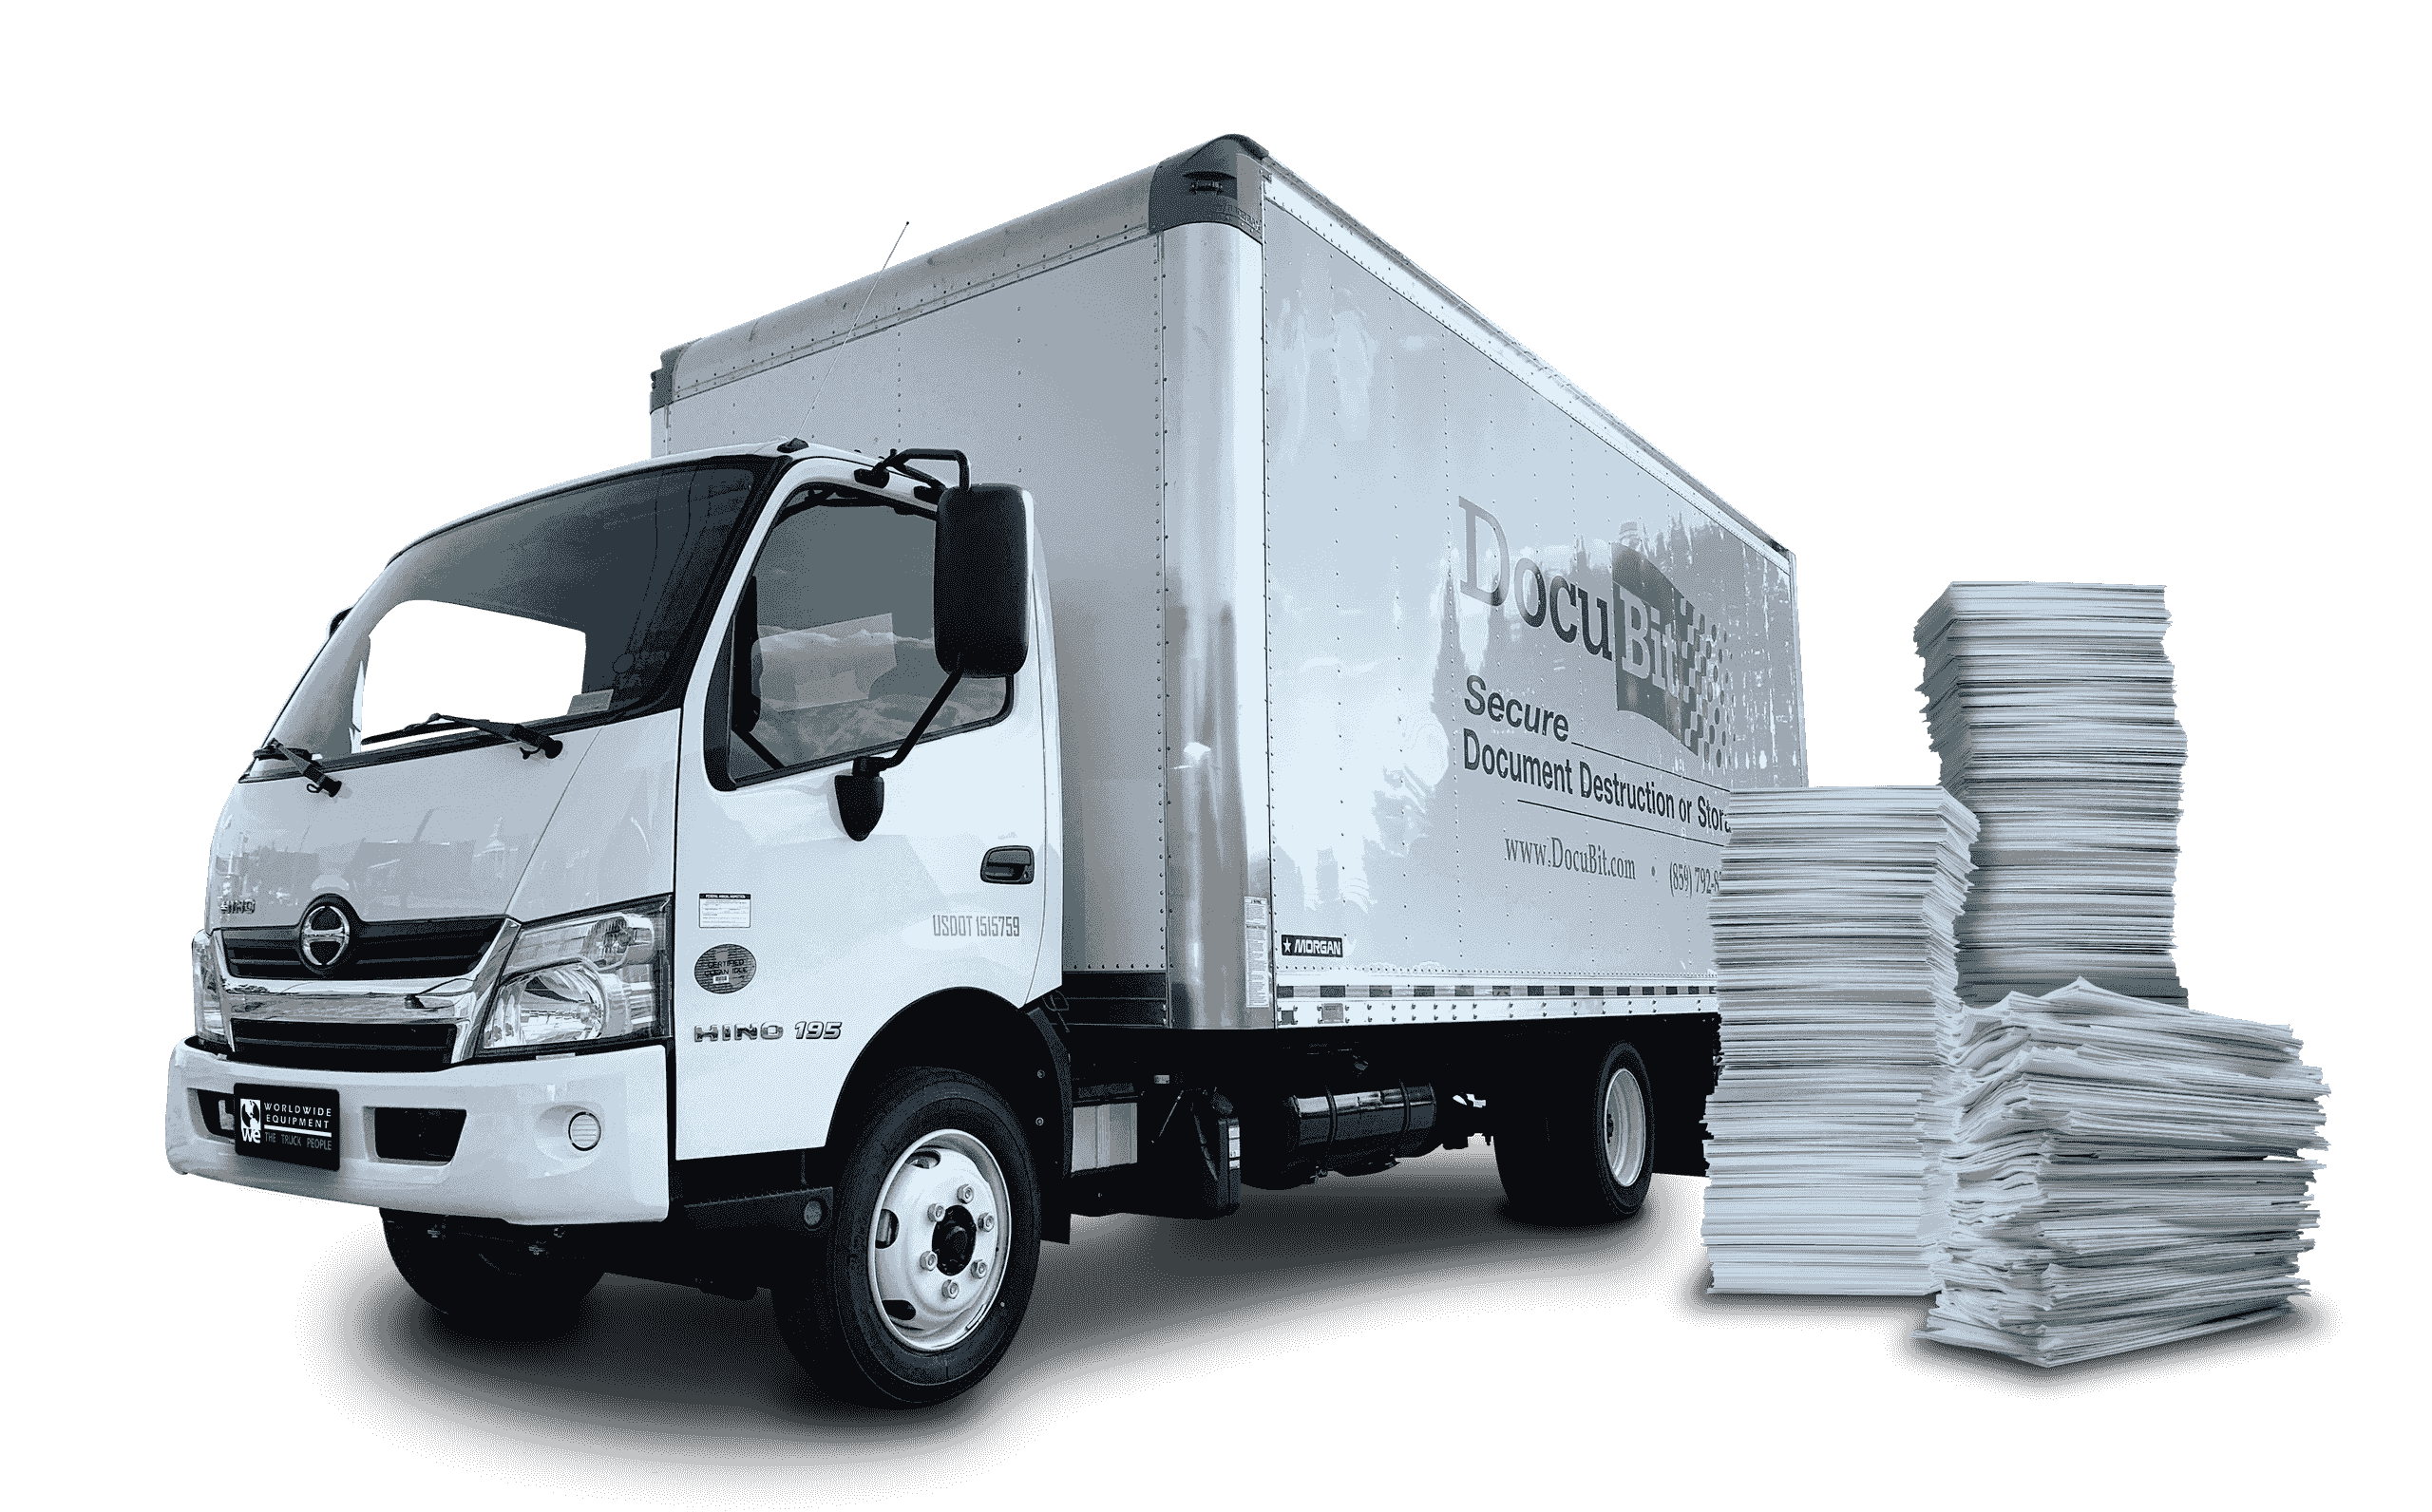 Paper Shredding Box Truck